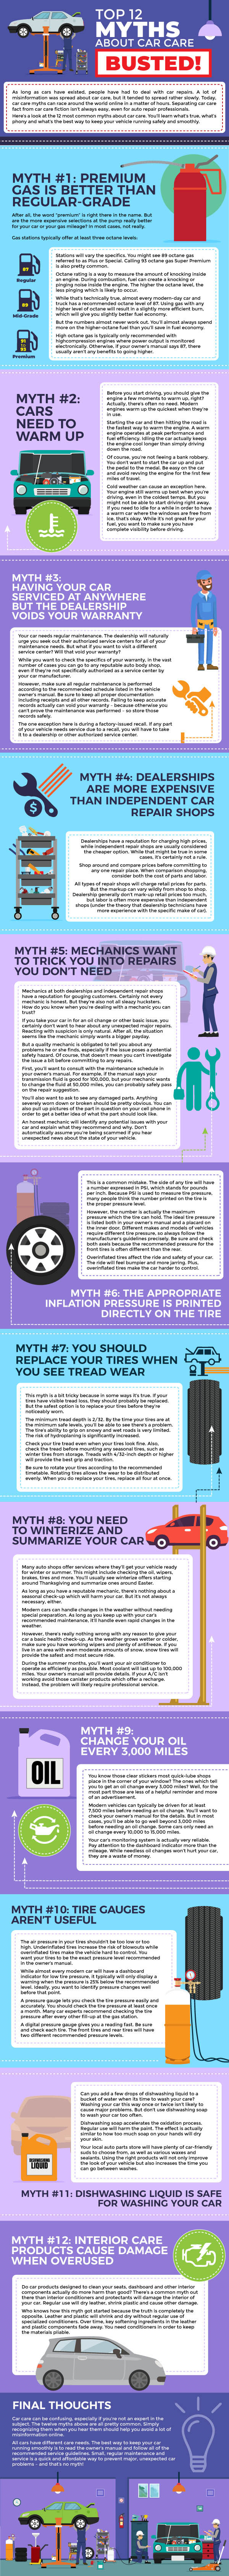 Top 12 Myths About Car Care - Busted!